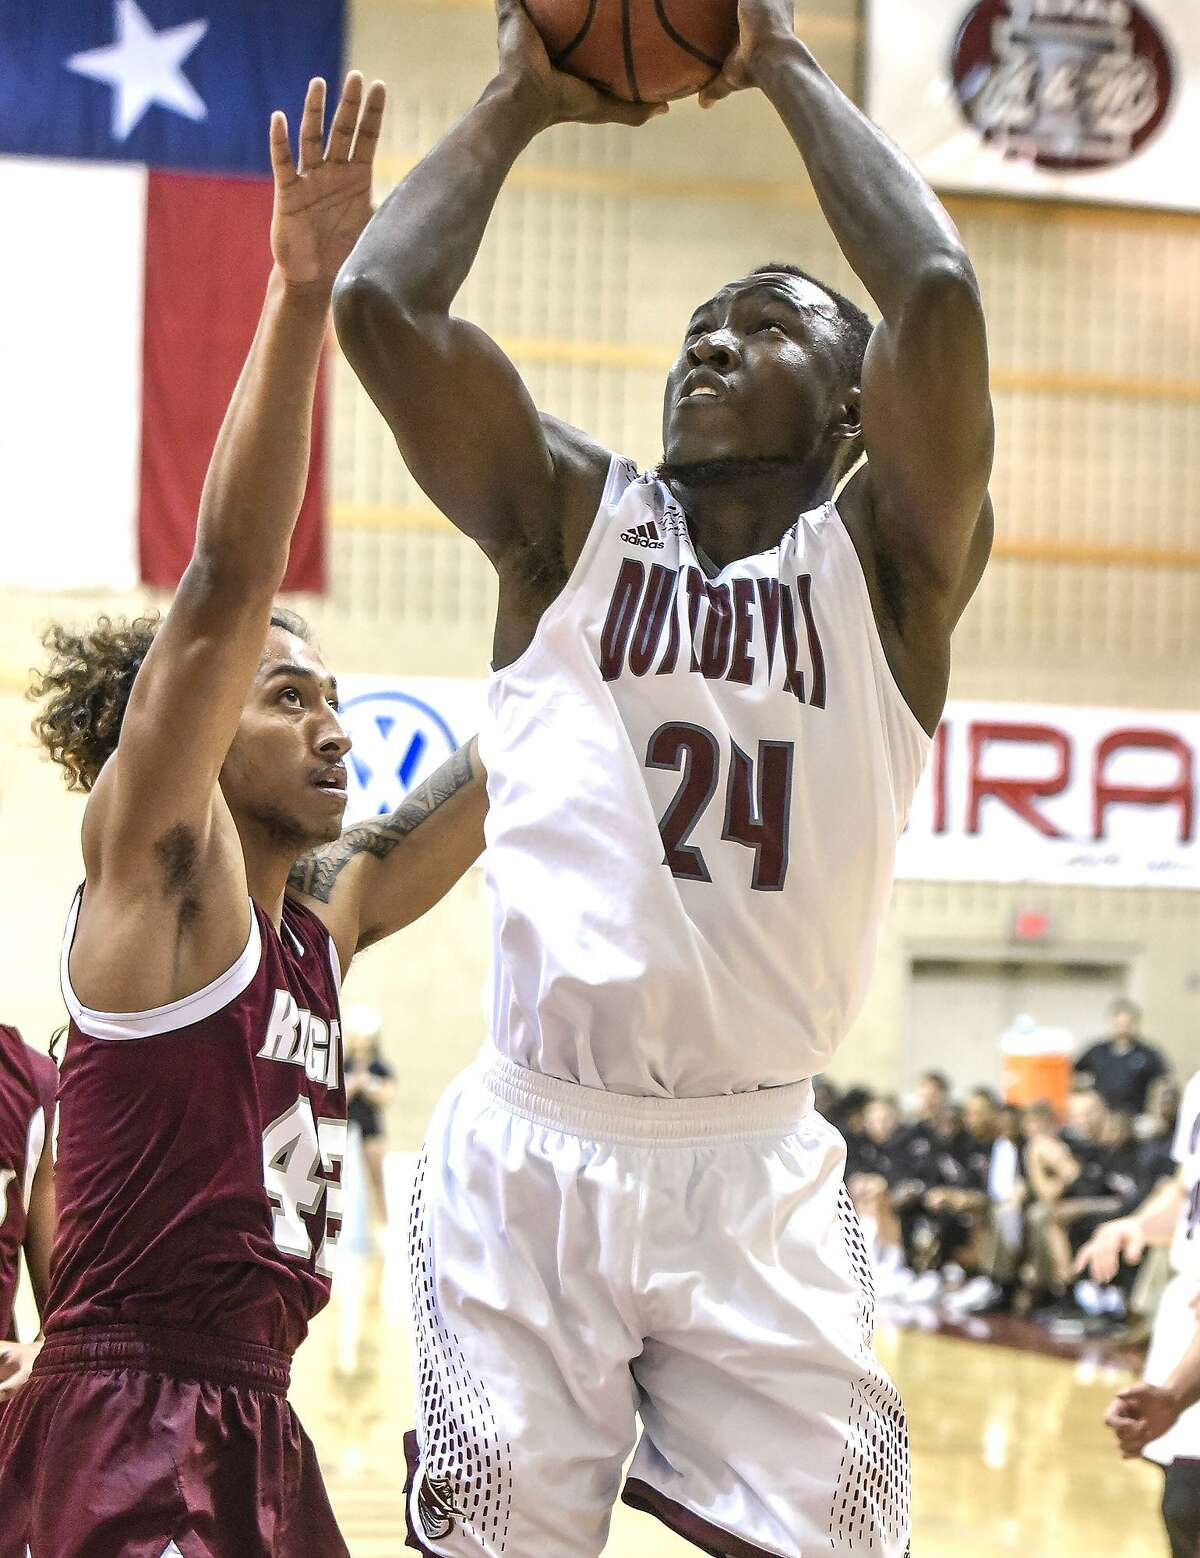 TAMIU center Bunja Yaboe had a team-high 16 points and seven rebounds in the Dustdevils' 83-68 loss at Incarnate Word on Saturday night.